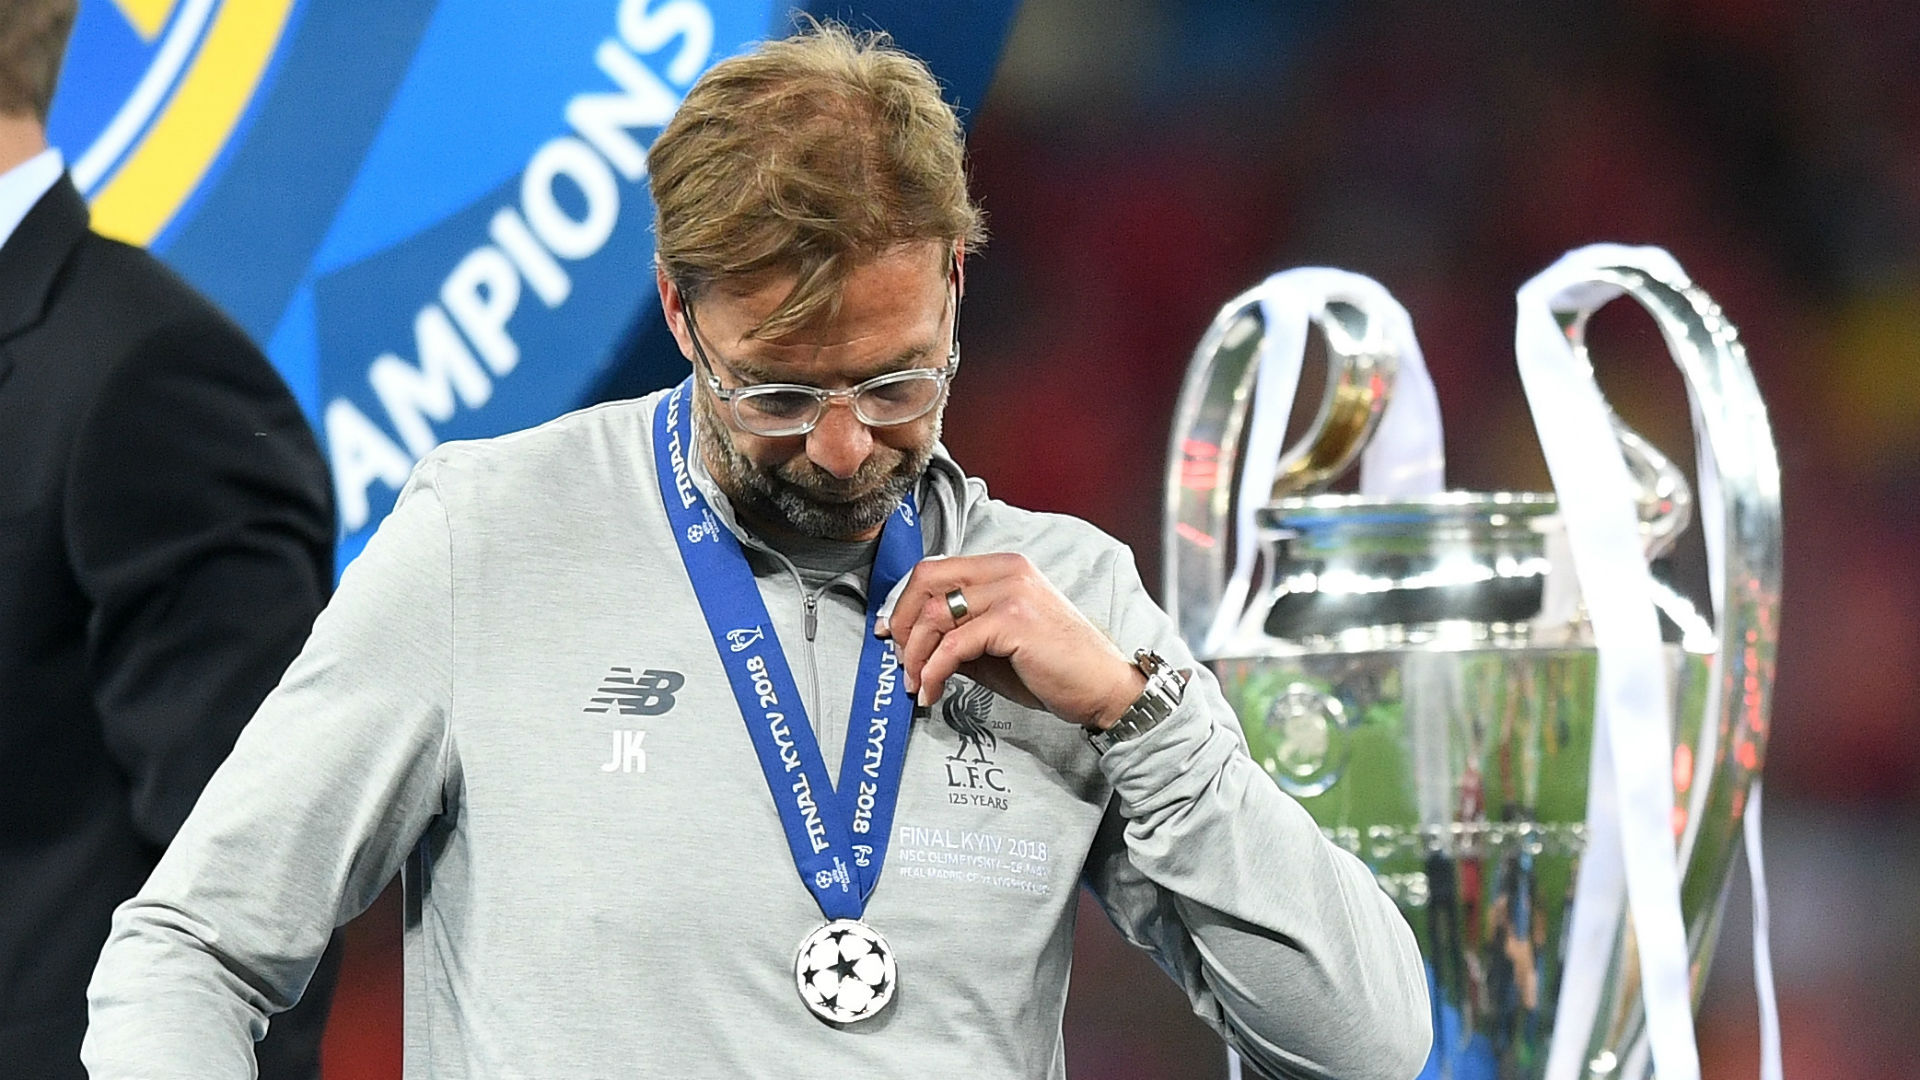 A final winner again! 2,576 days and the wait is over for Jurgen Klopp